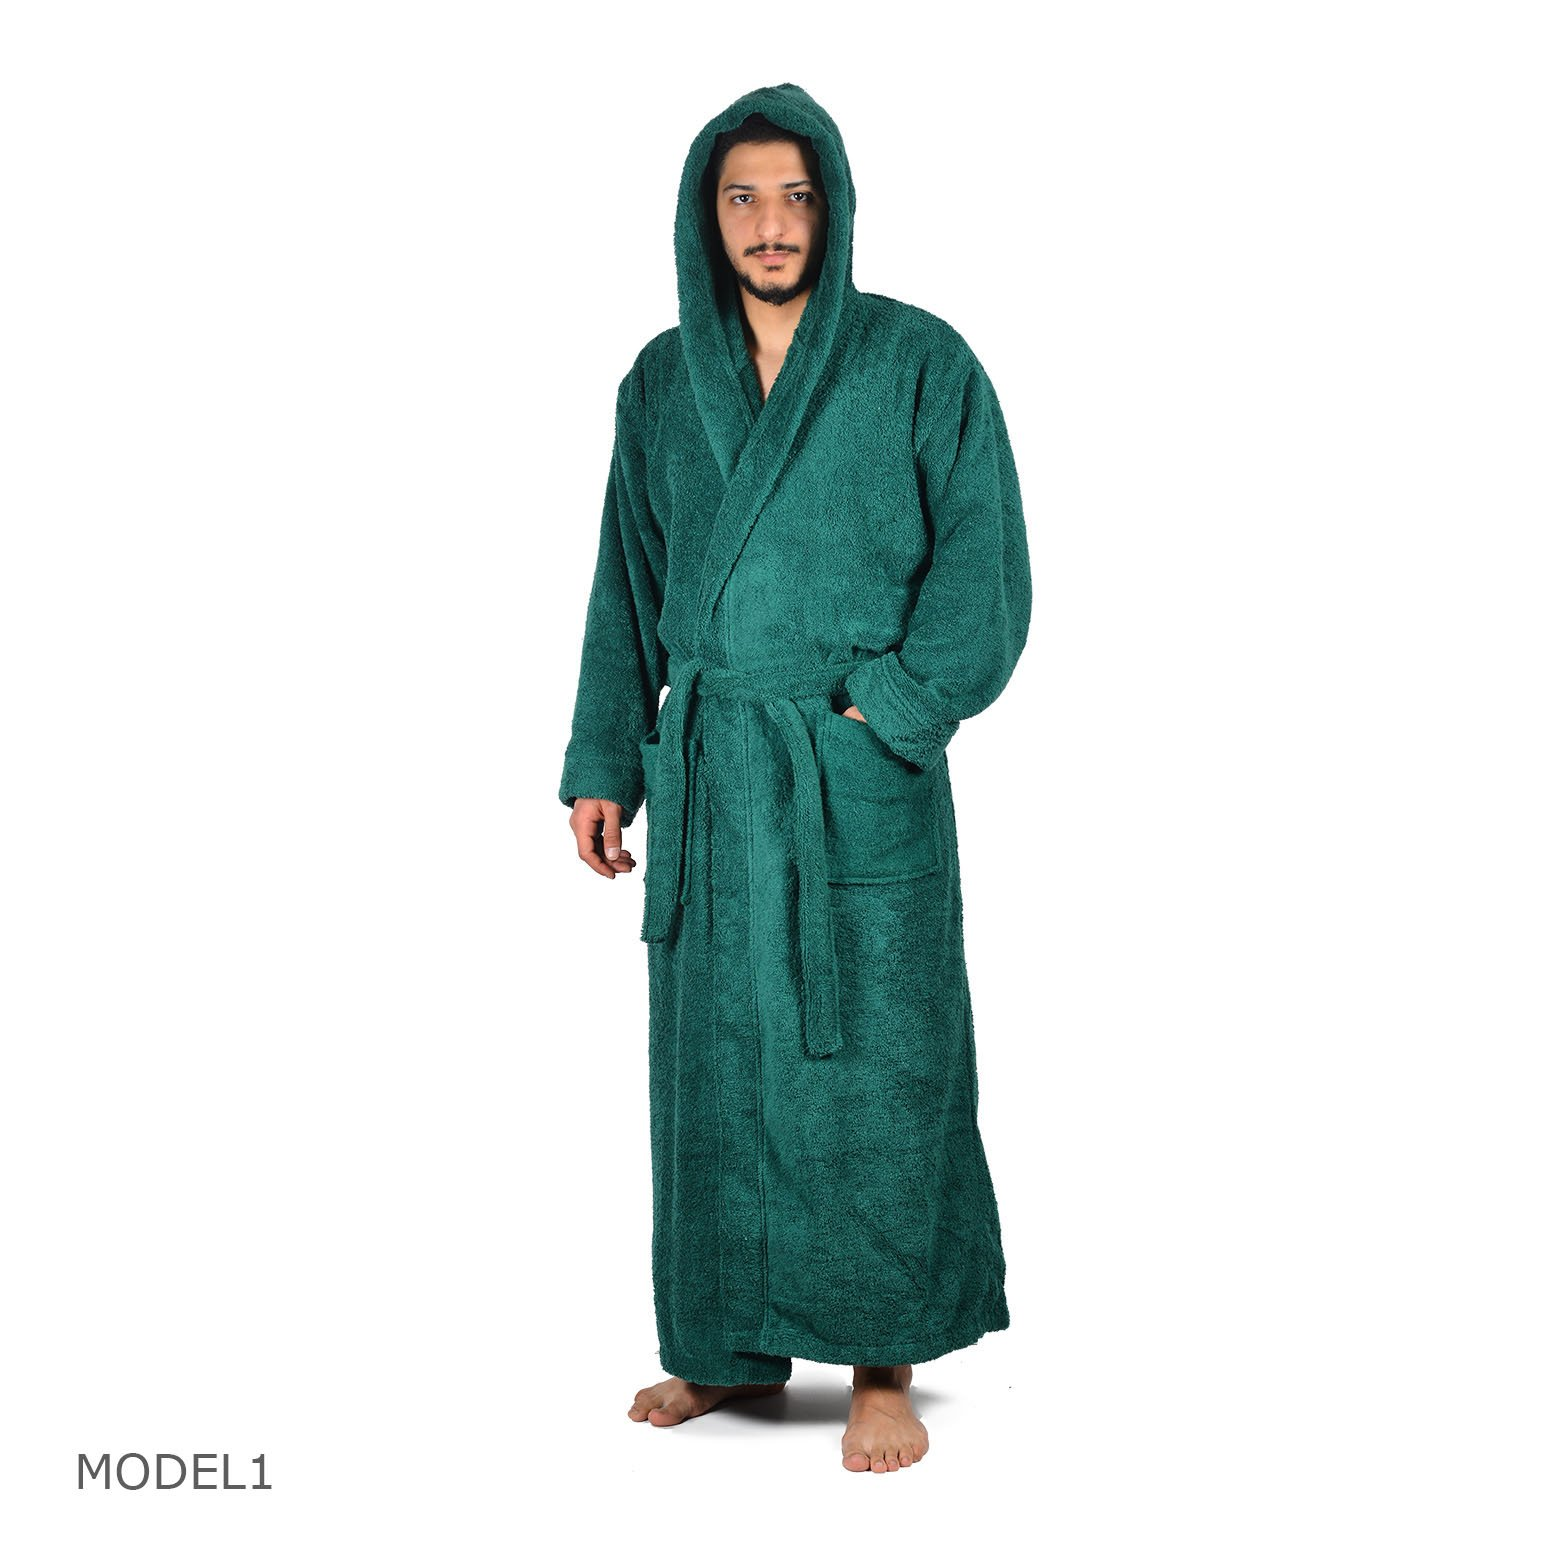 Arvec Men's Combed Turkish Cotton Terry Full Ankle Length Hooded Bathrobe (Medium/Large, Green)